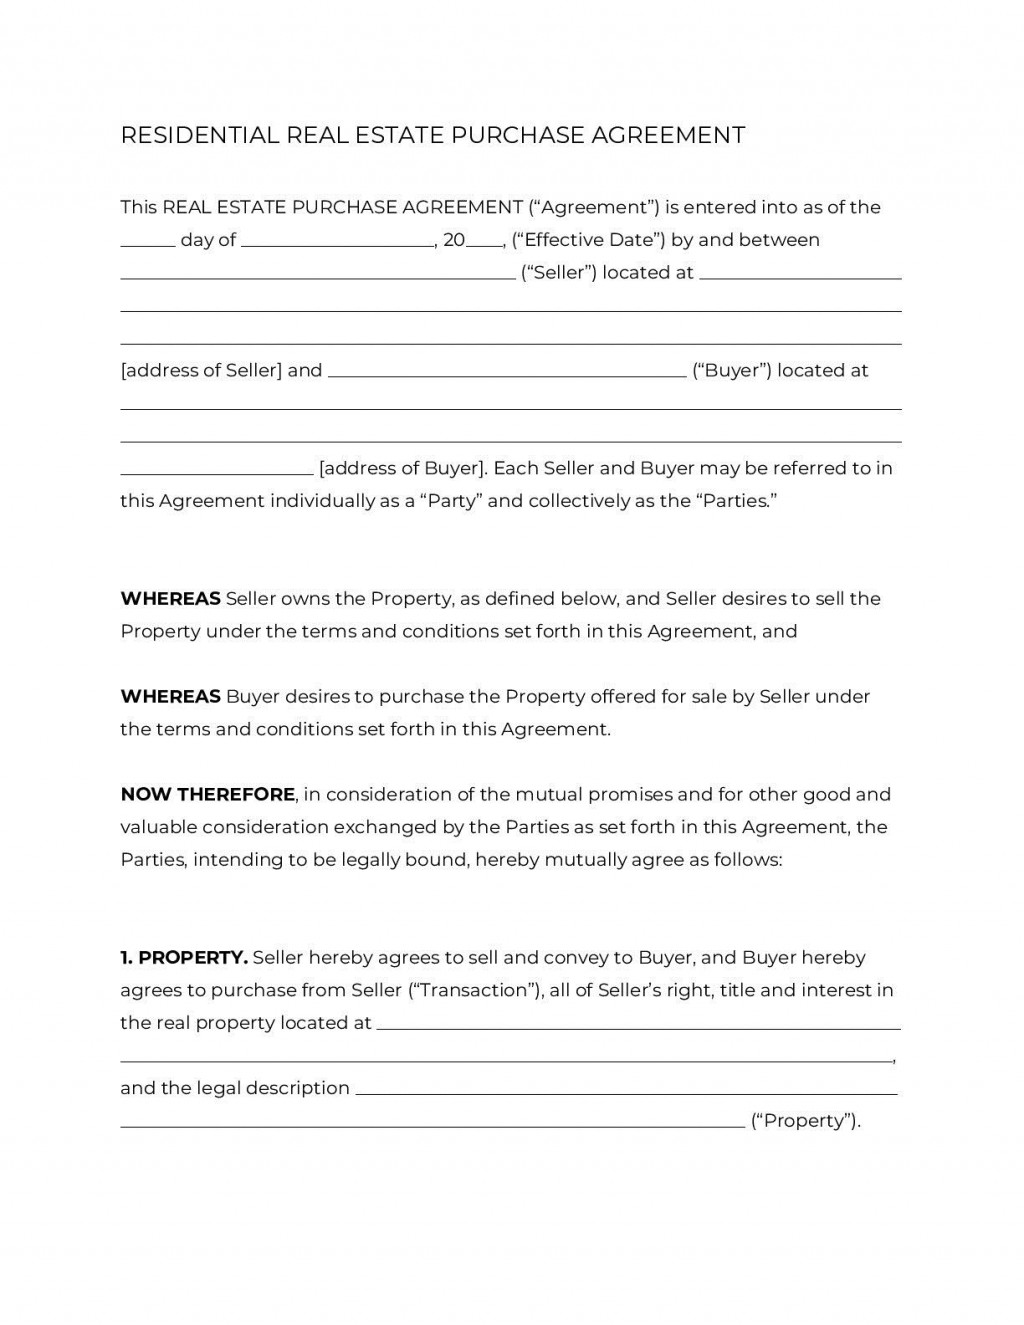 007 Singular Residential Purchase Agreement Template Highest Clarity  California Form FreeLarge